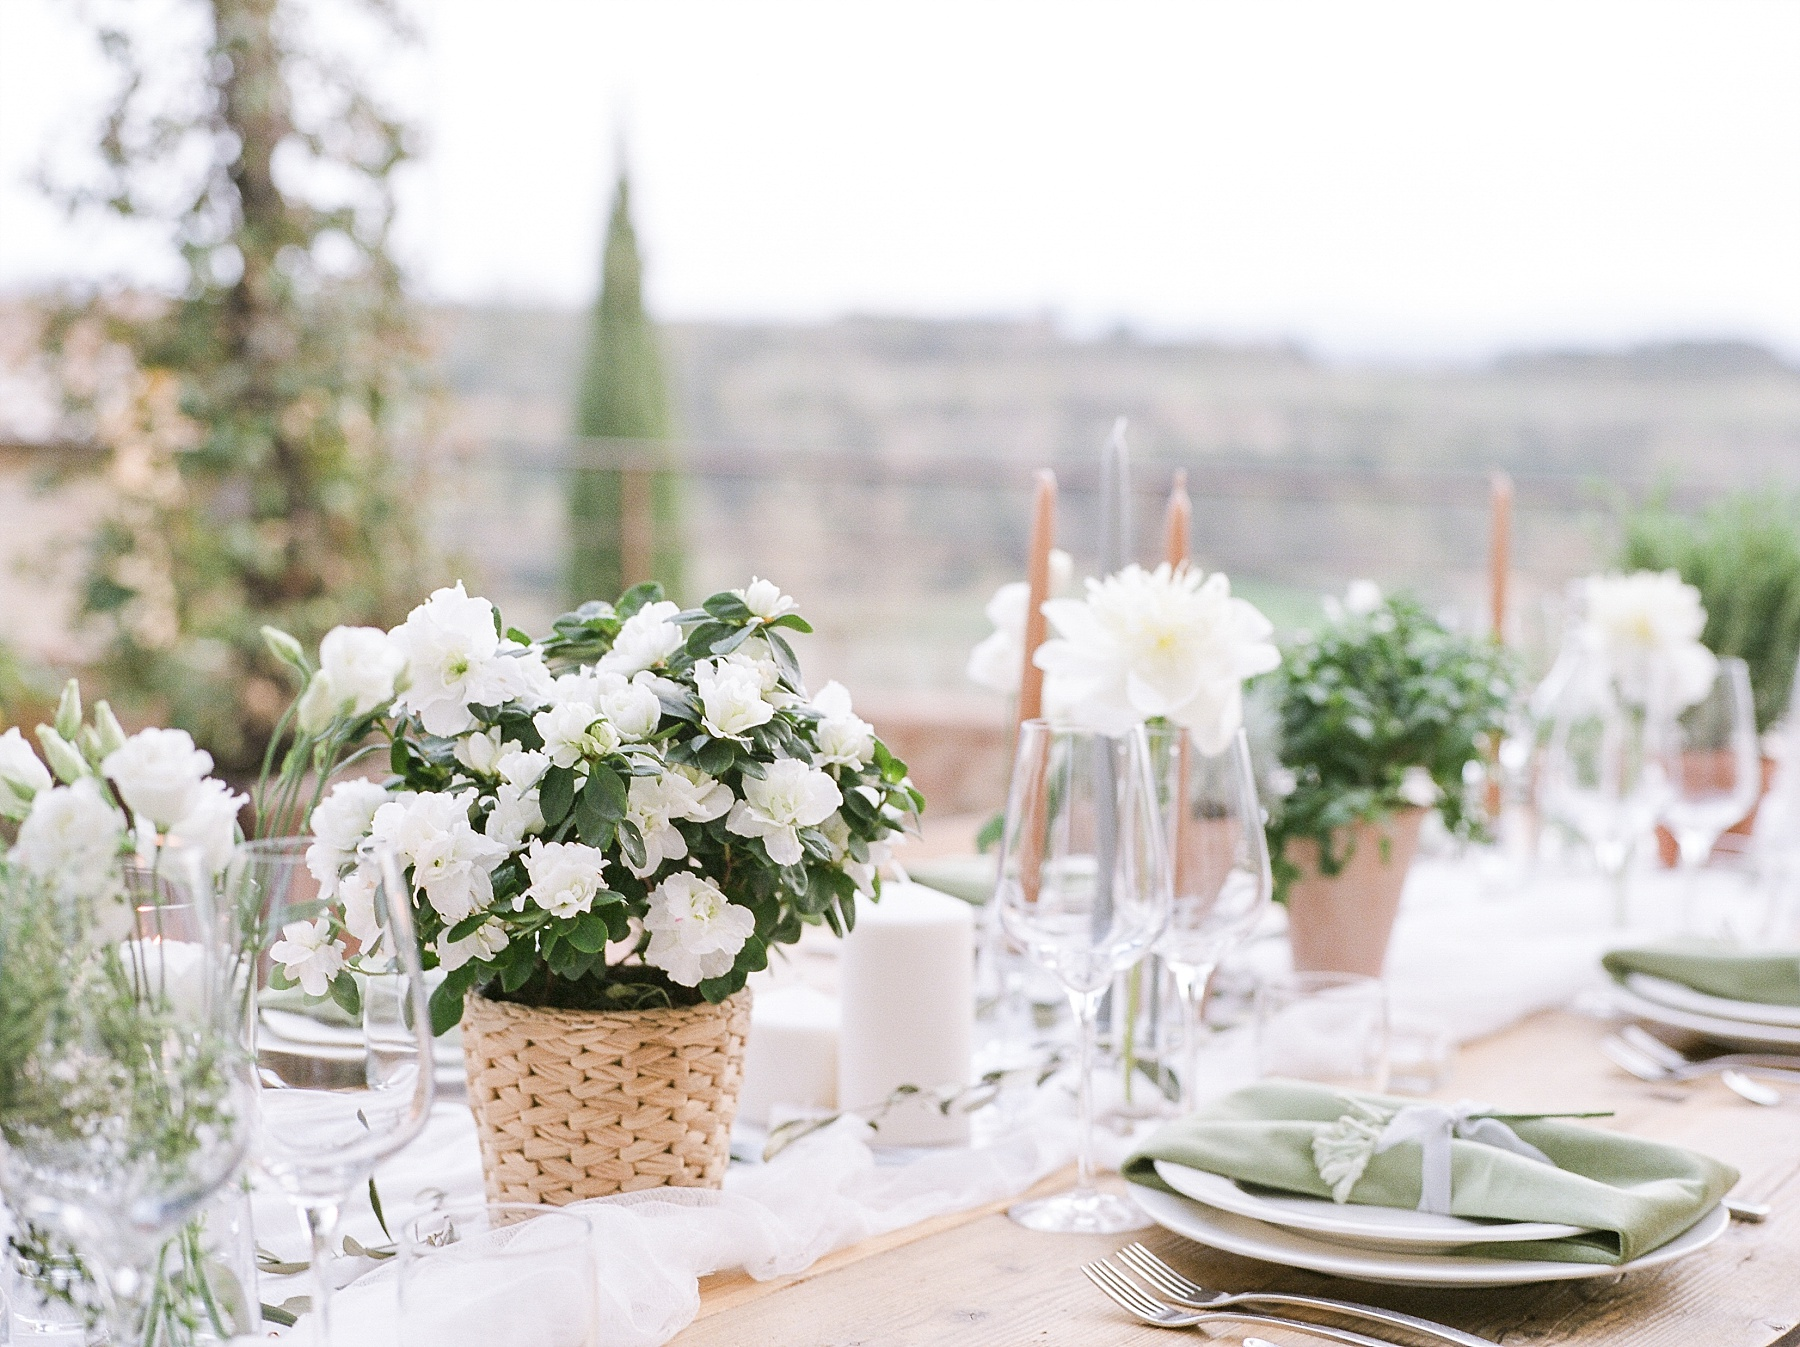 All White Destination Wedding in the Hills of Tuscany Italy at Estate Borgo Petrognano by Kelsi Kliethermes Photography_0022.jpg